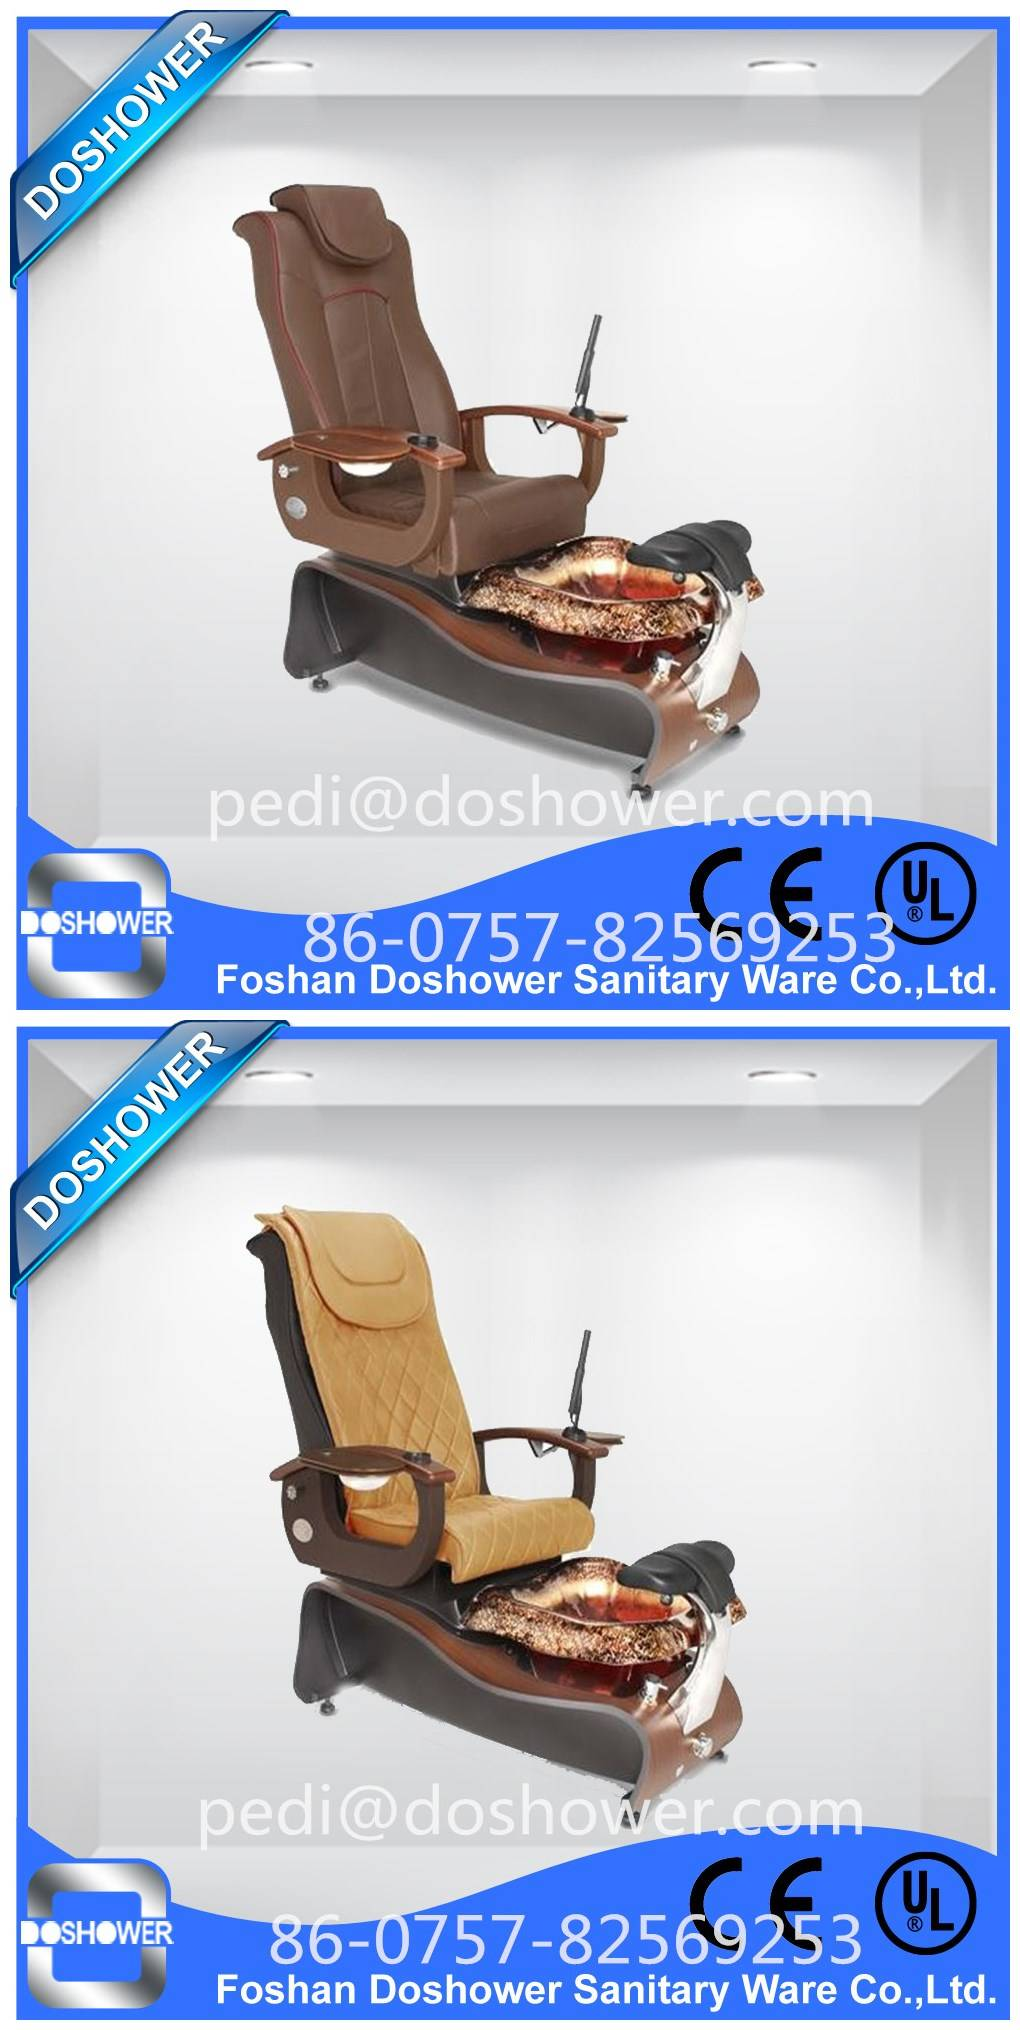 Doshower DS-W2 foot pedicure basin of pedicure spa chair 2016 luxury